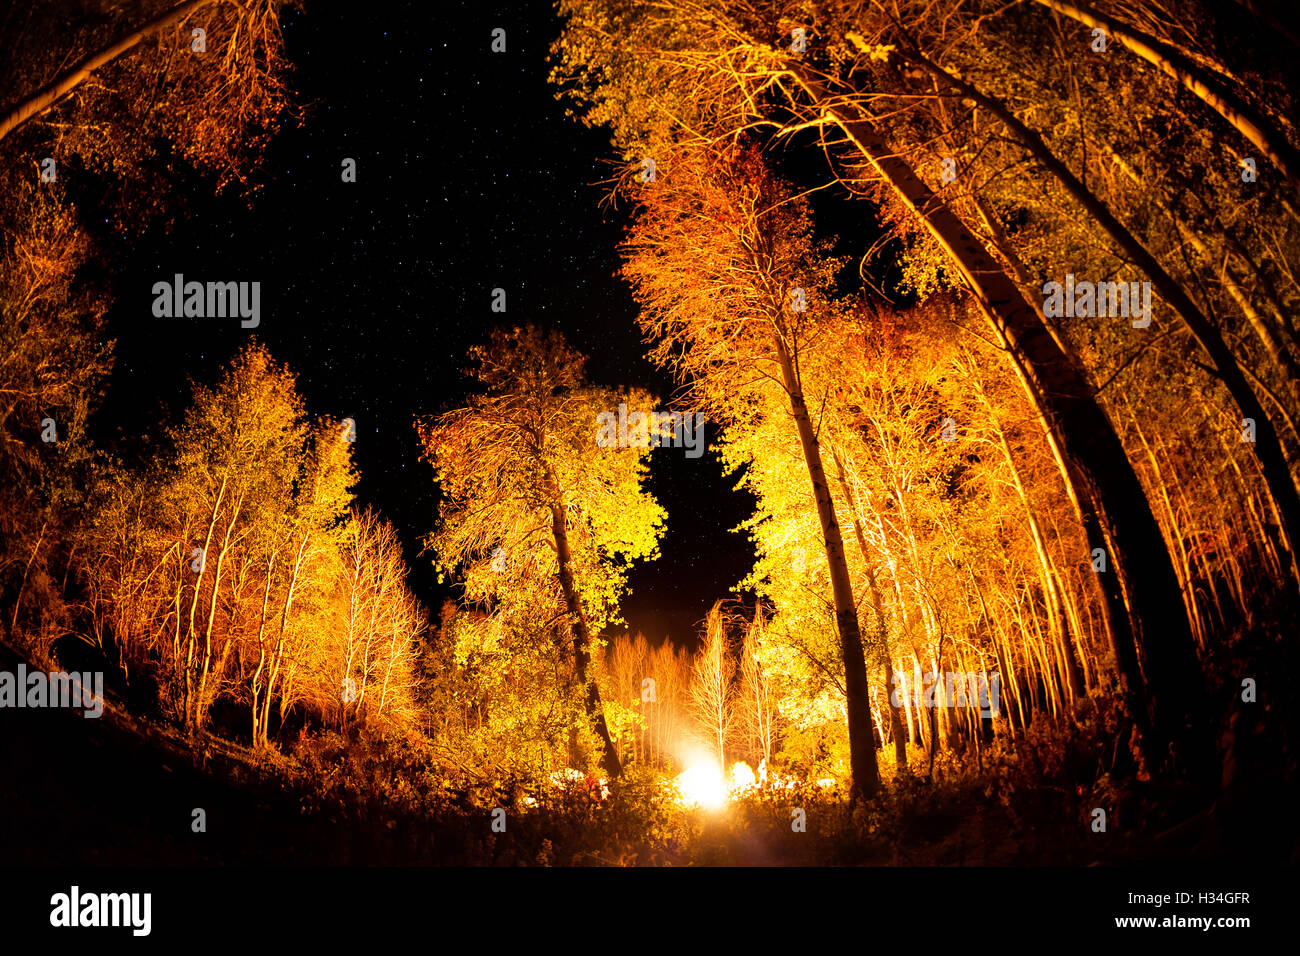 Camp in the forest with big trees and bonfire at night starry sky - Stock Image